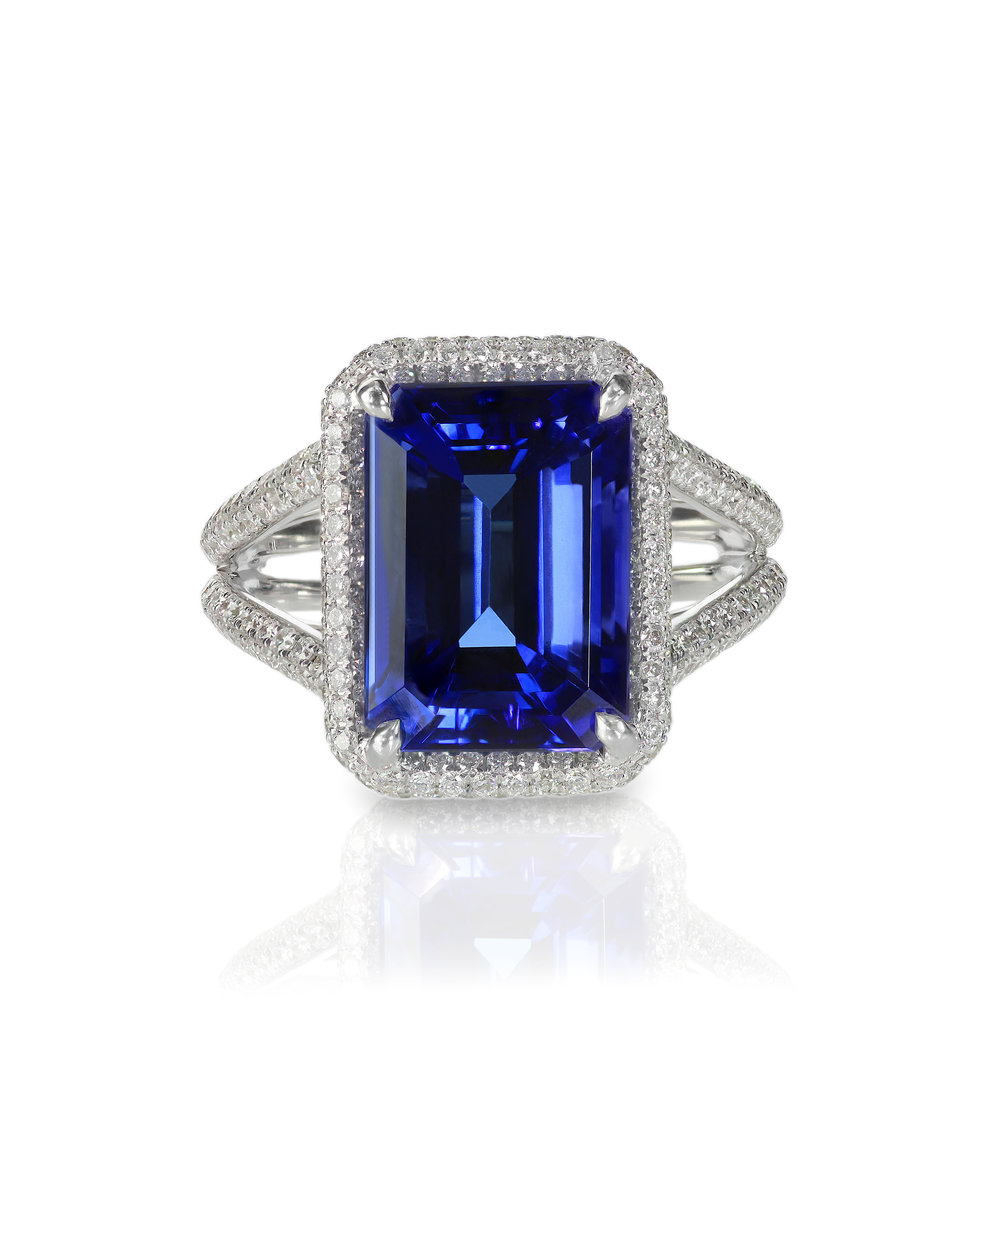 Emerald Cut Blue Sapphire Diamond Ring